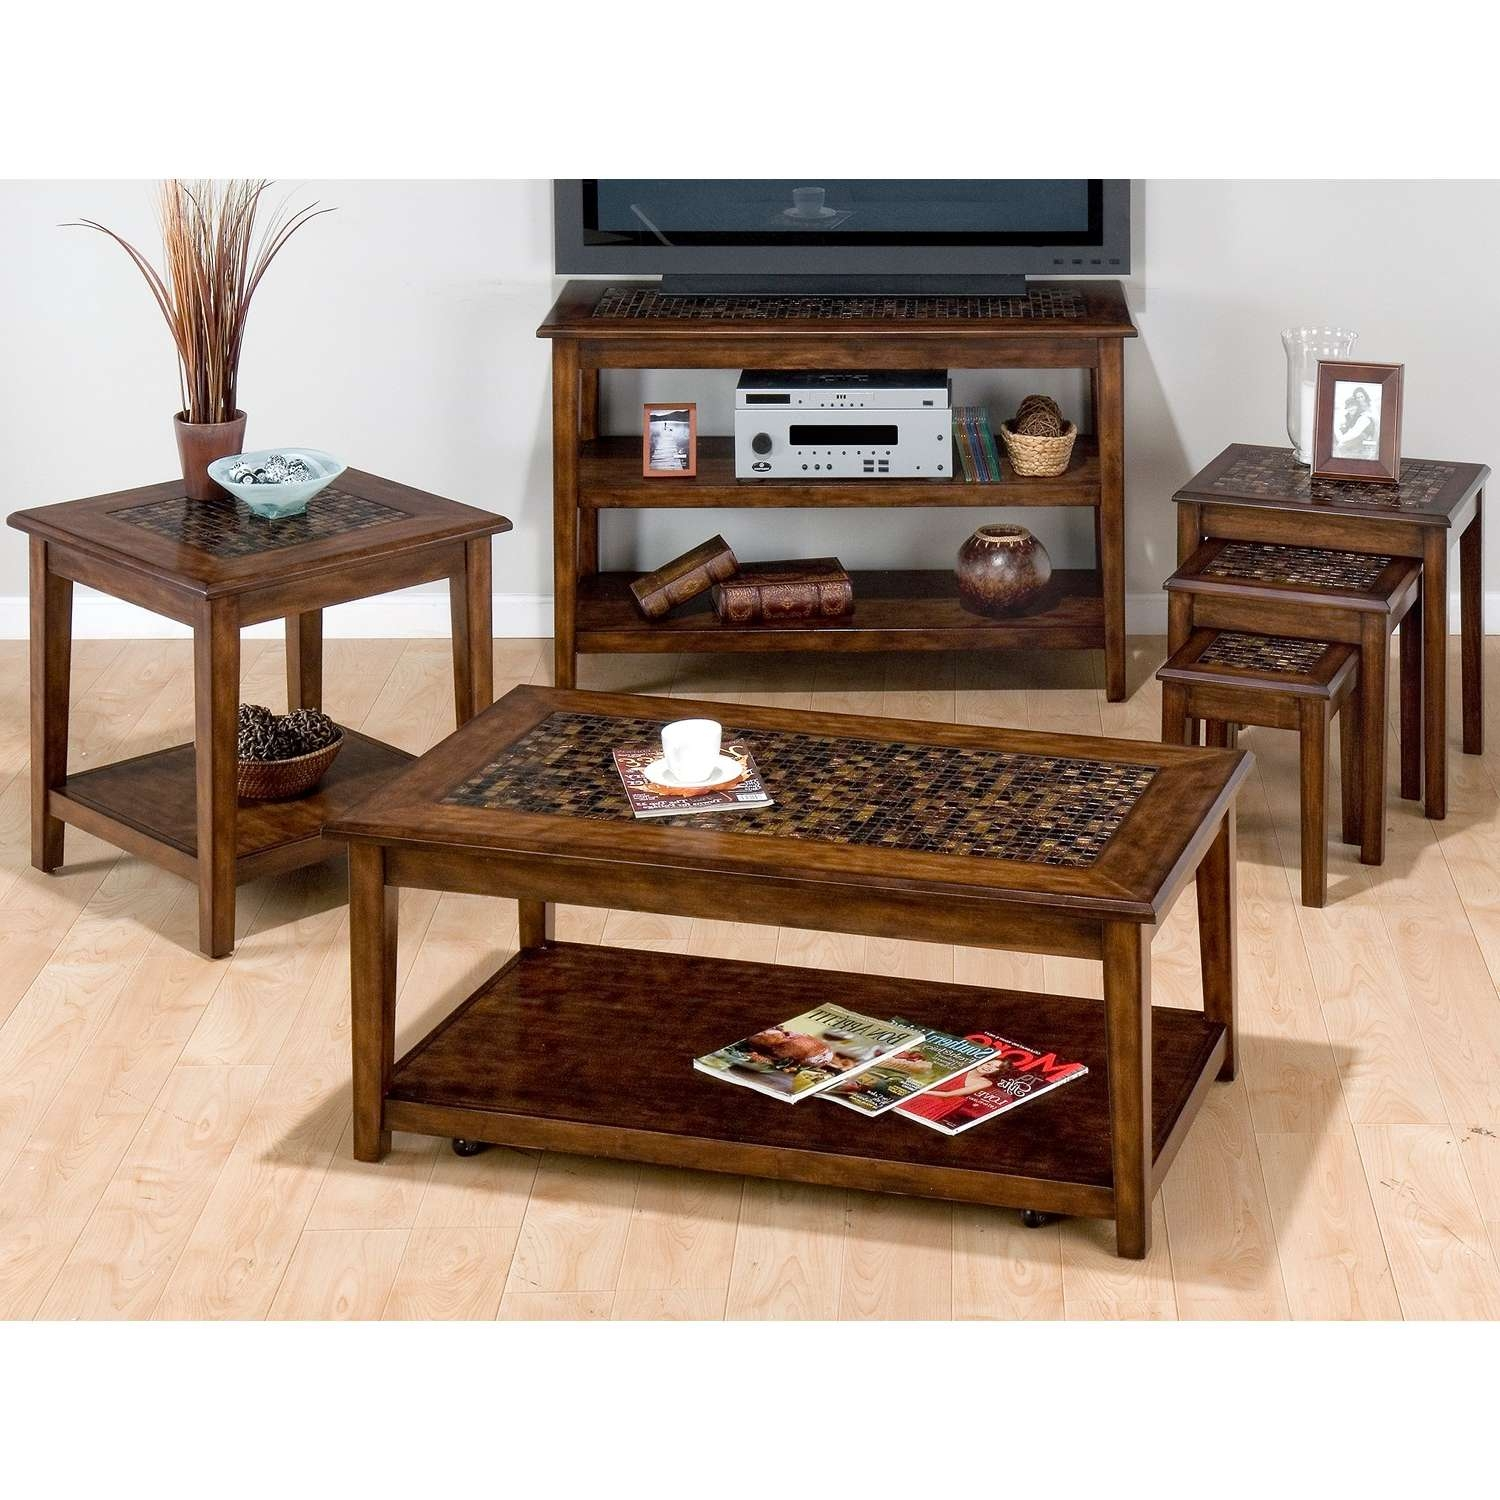 Trendy Tv Stand Coffee Table Sets With Regard To Jofran Baroque Mosaic Tile Top Coffee Table Set (View 17 of 20)